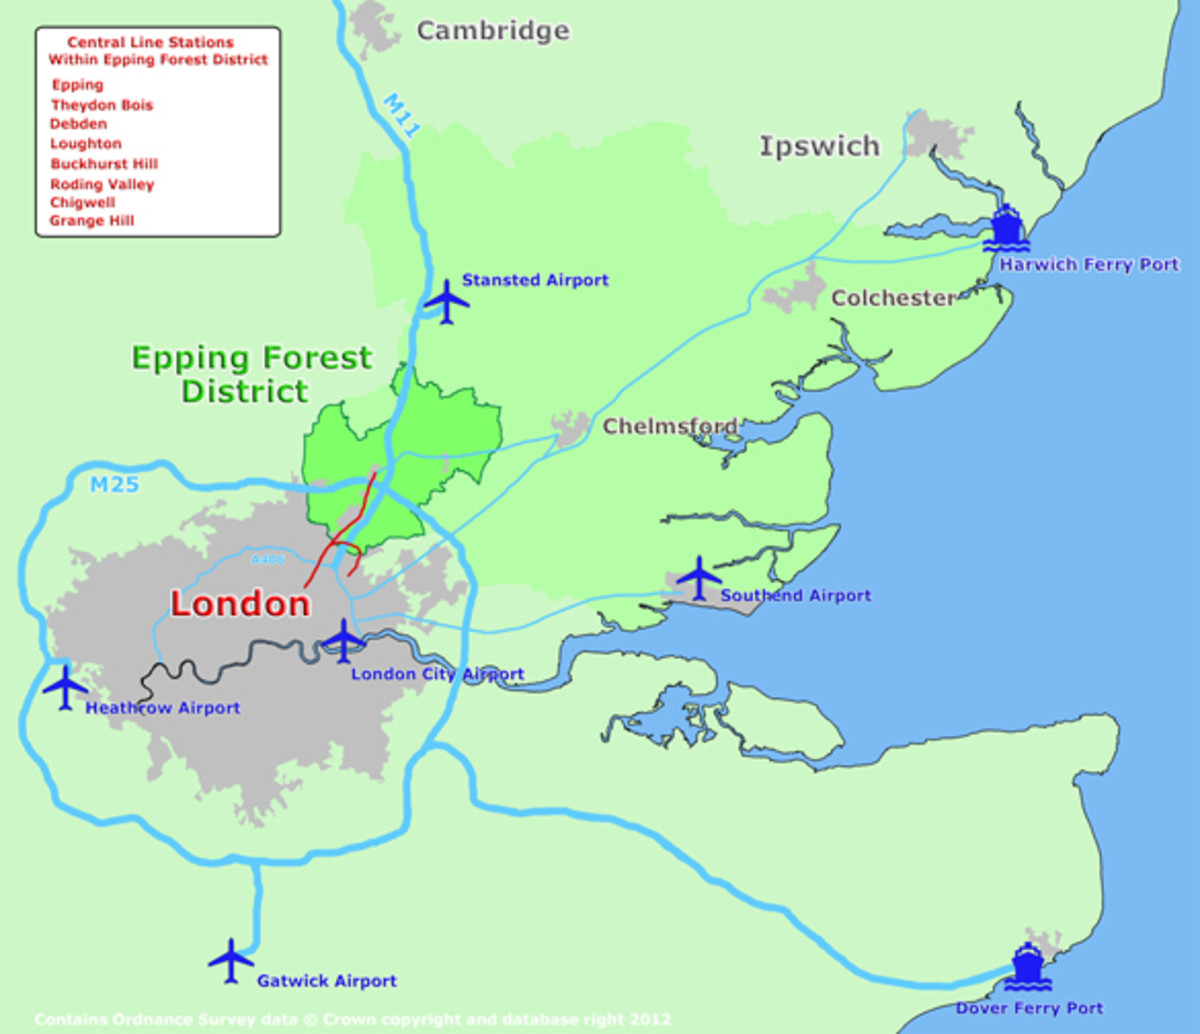 SE England - the darker green of Epping Forest Area, Wanstead Park is within the pink area to the north-east of the London conurbation